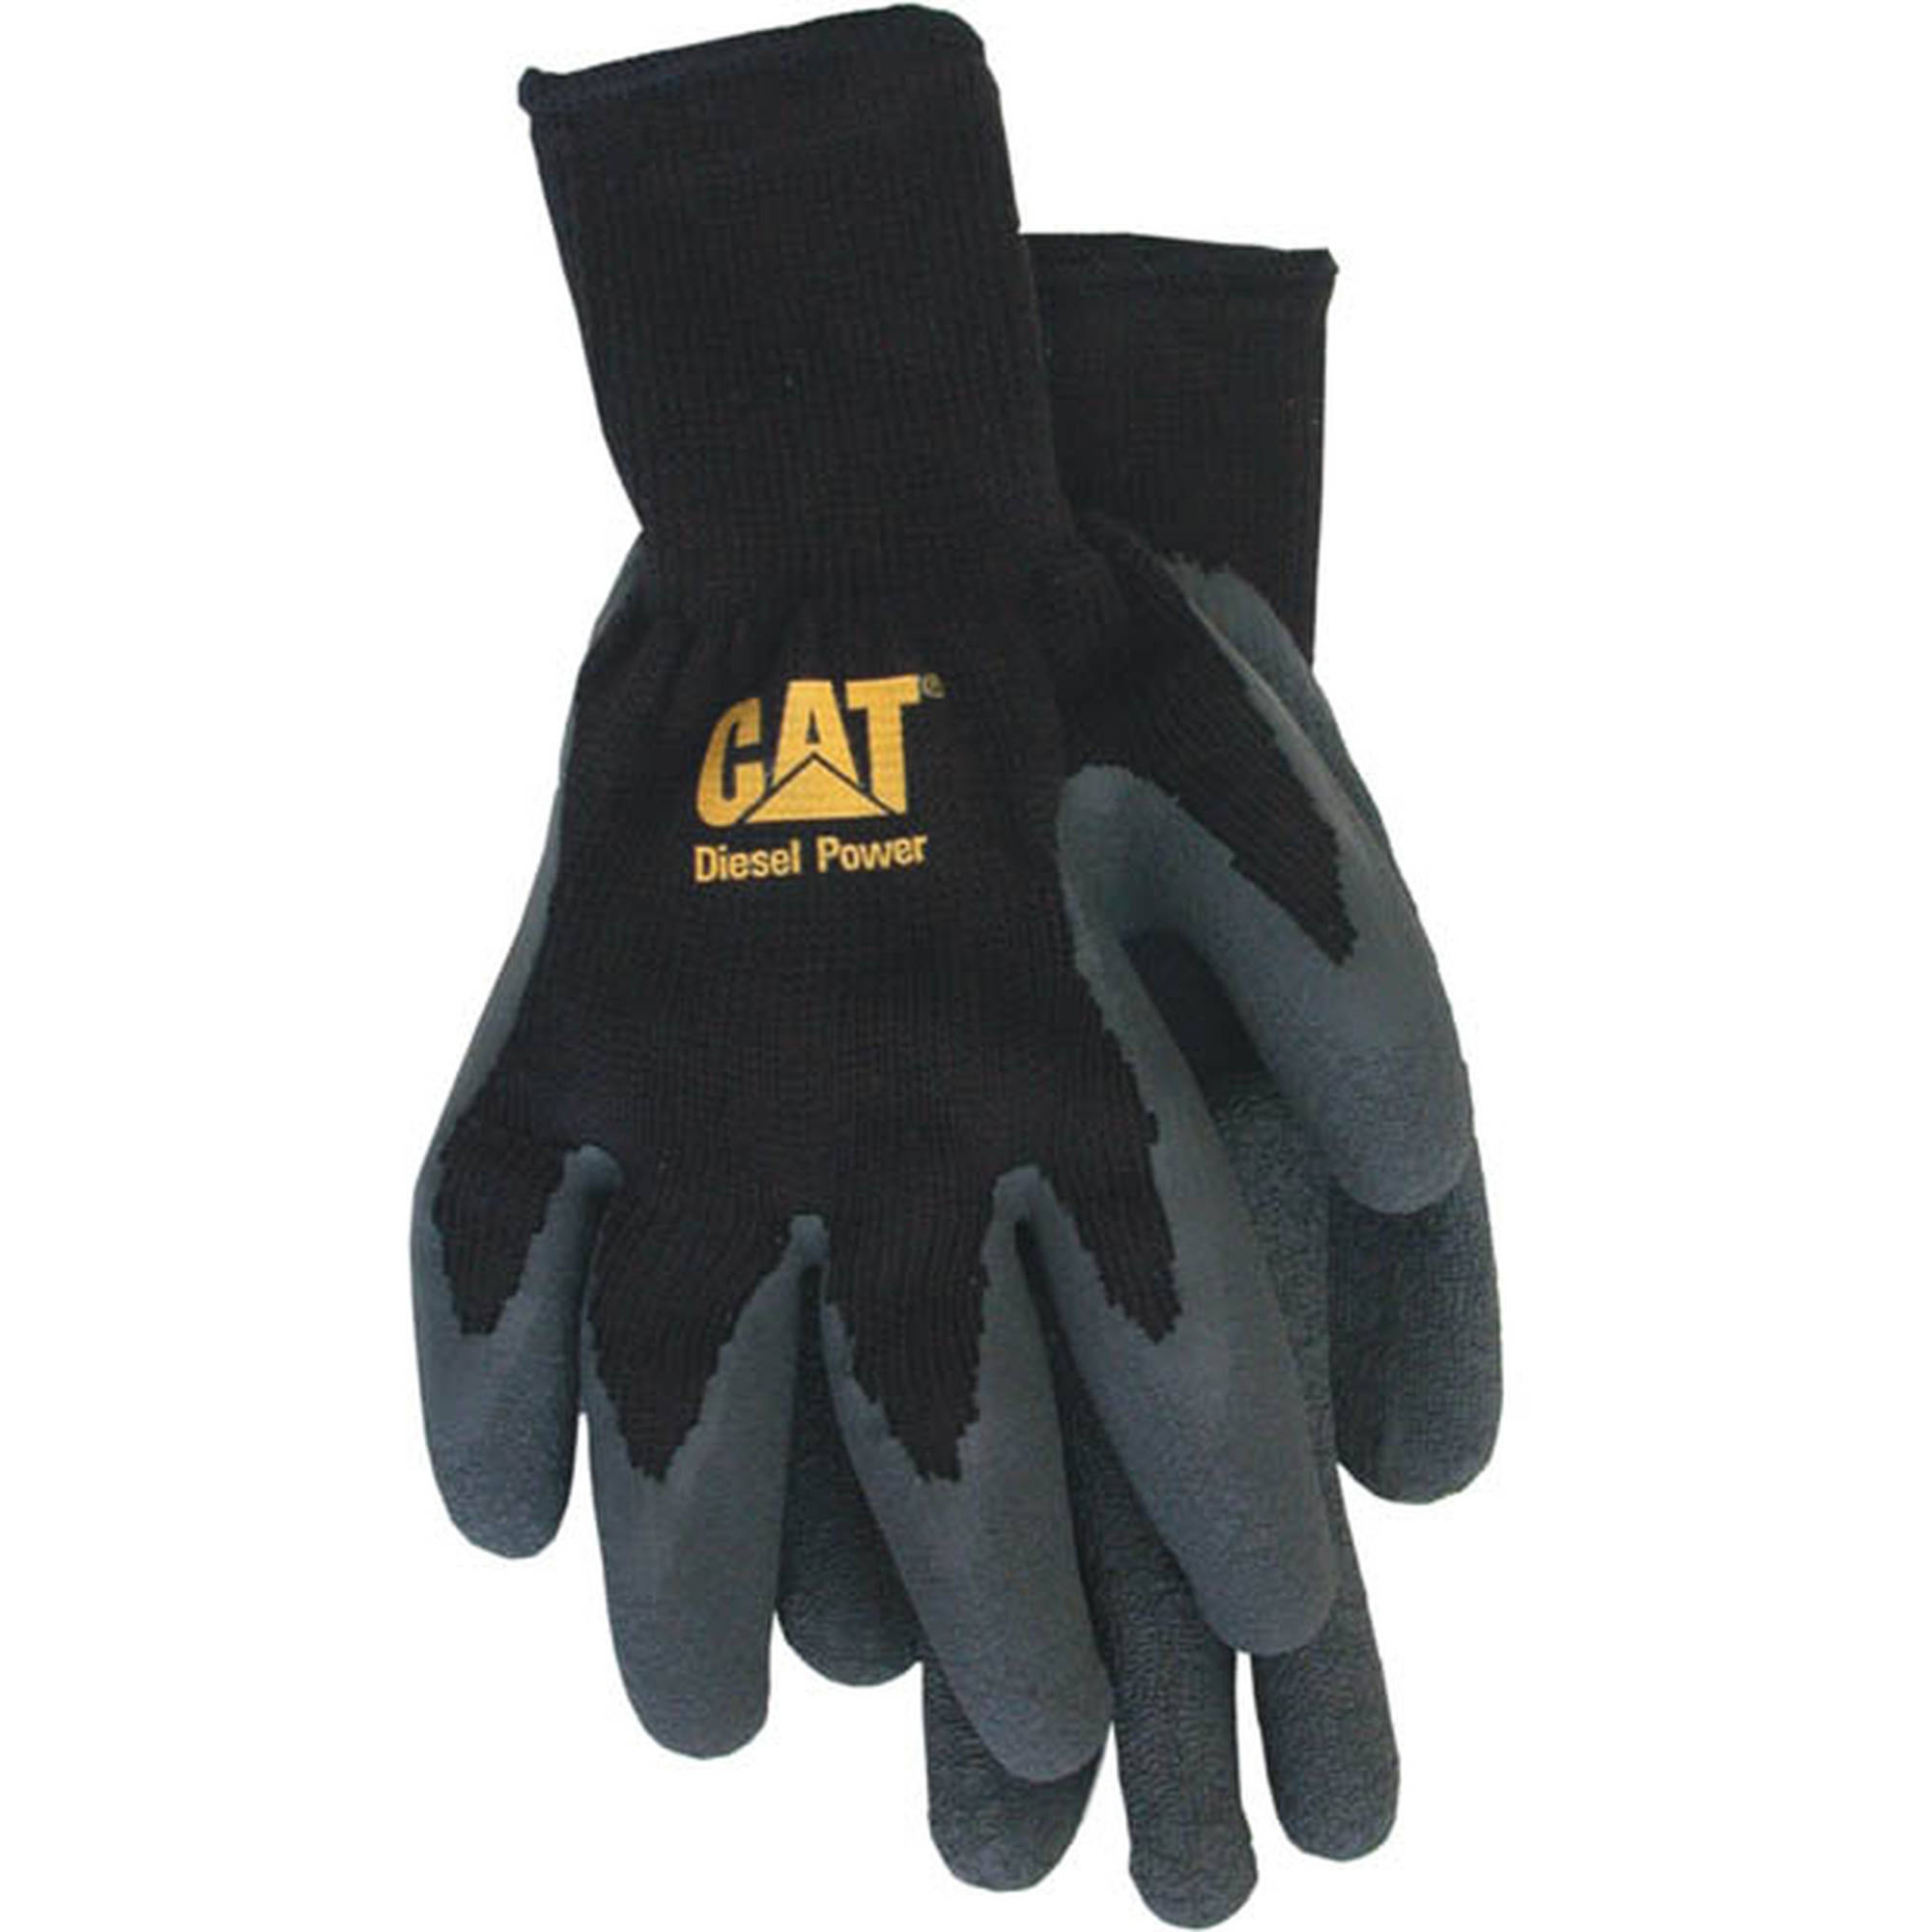 Cat Gloves CAT017400M Medium Cotton and Latex Gloves